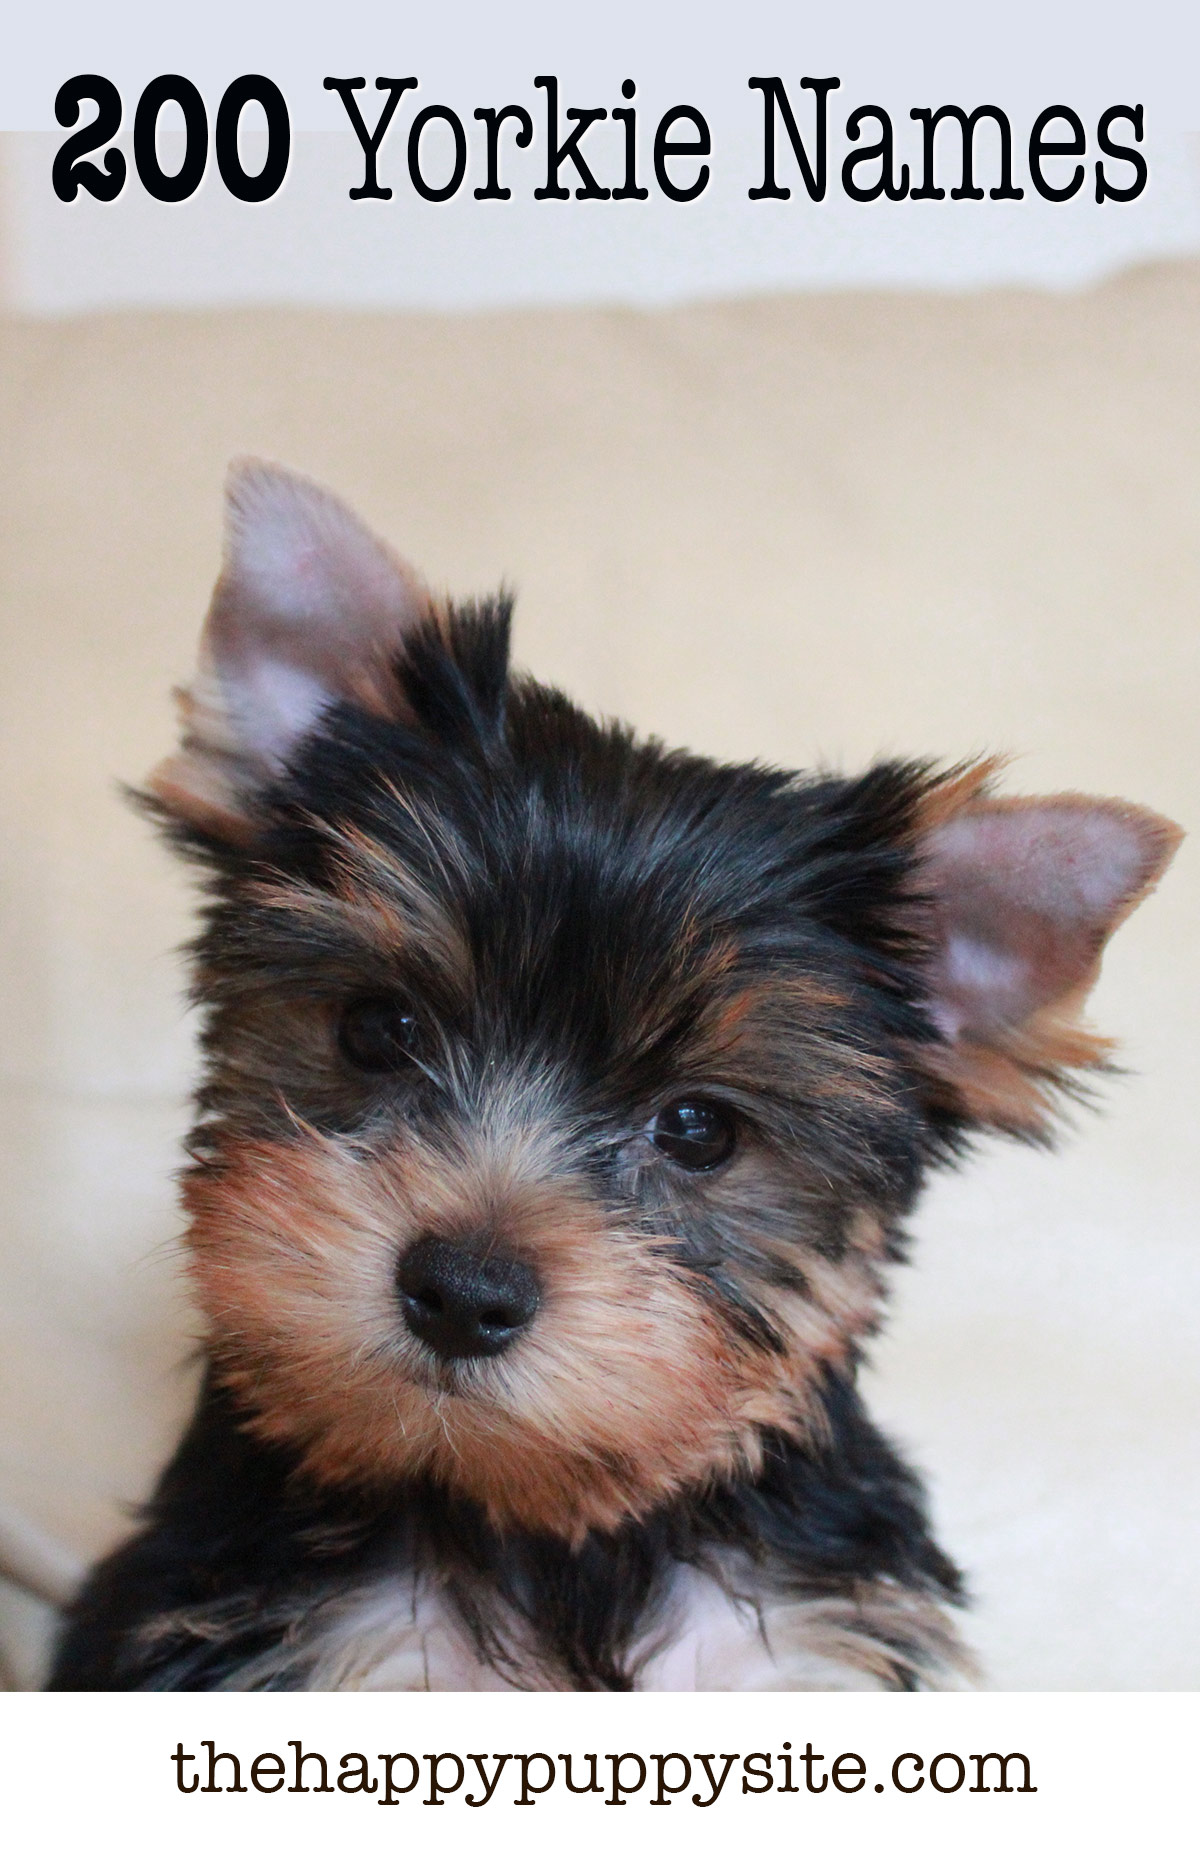 Yorkie Names - 200 Amazing Ideas For Naming Yorkshire Terriers